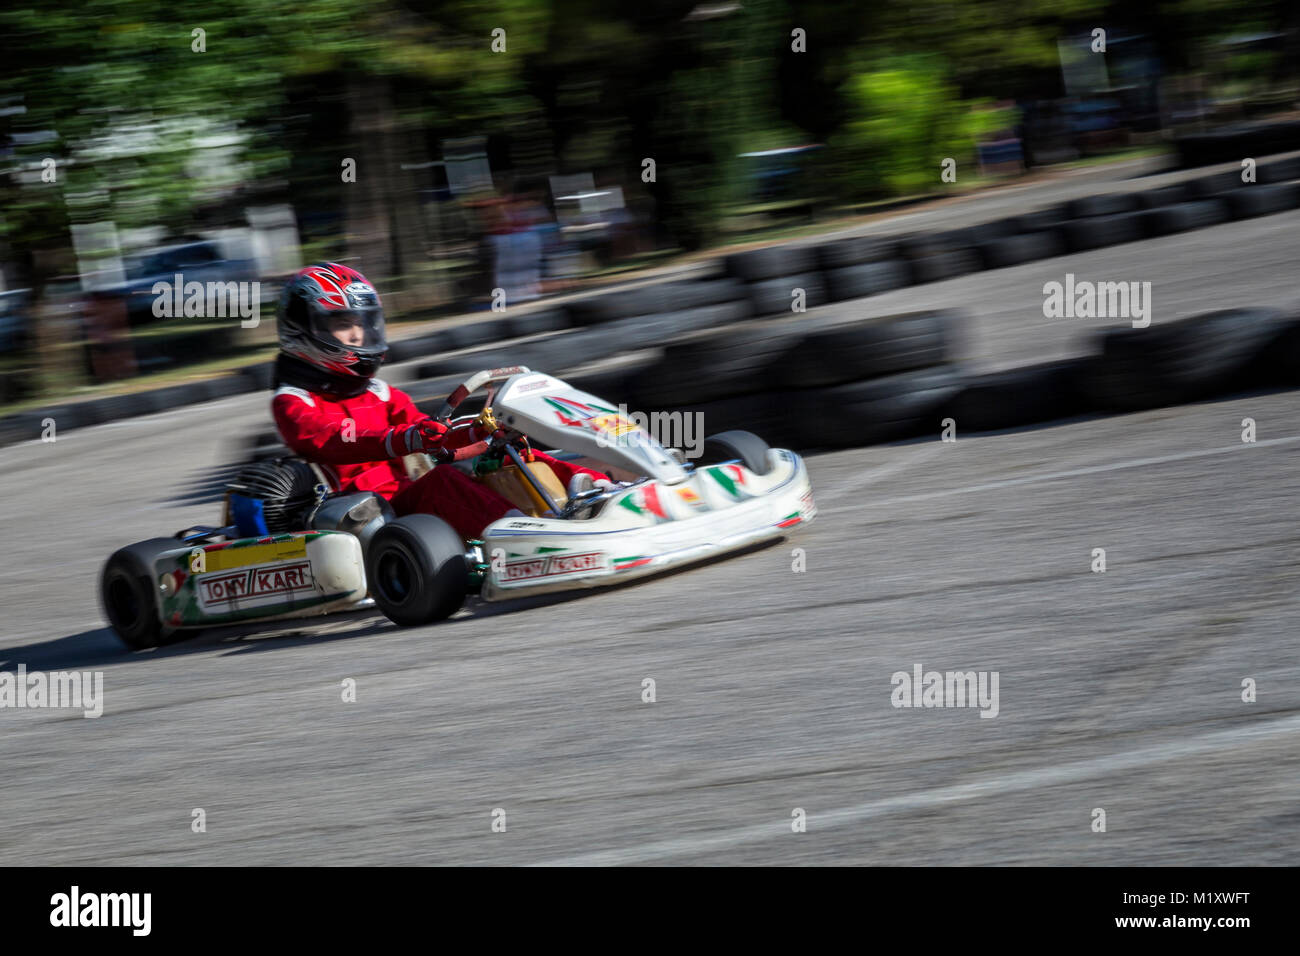 Go Kart And Track Stockfotos & Go Kart And Track Bilder - Alamy